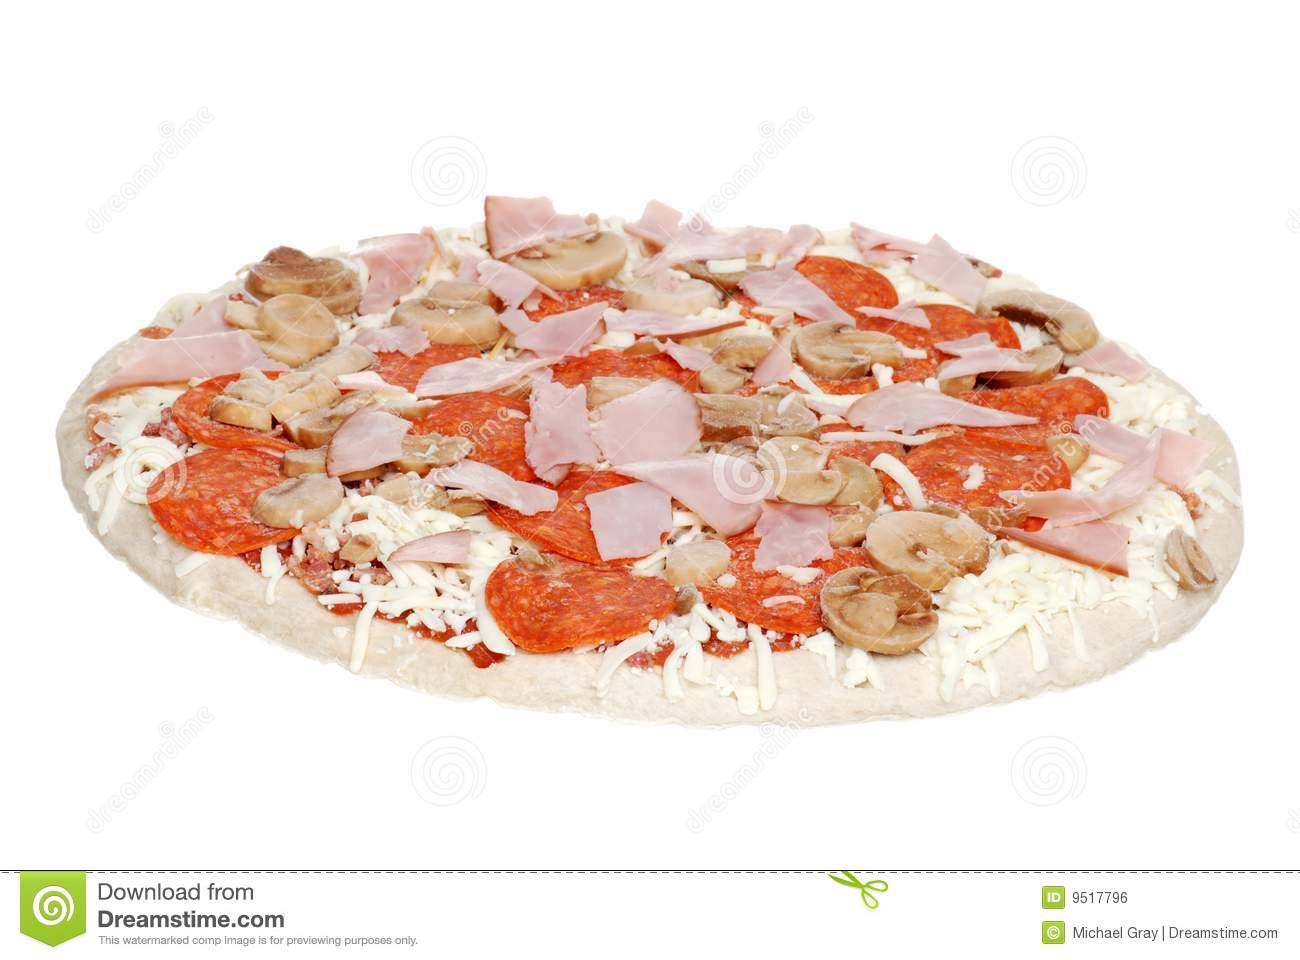 Uncooked pizza stock photo. Image of frozen, dough, cheesy ...